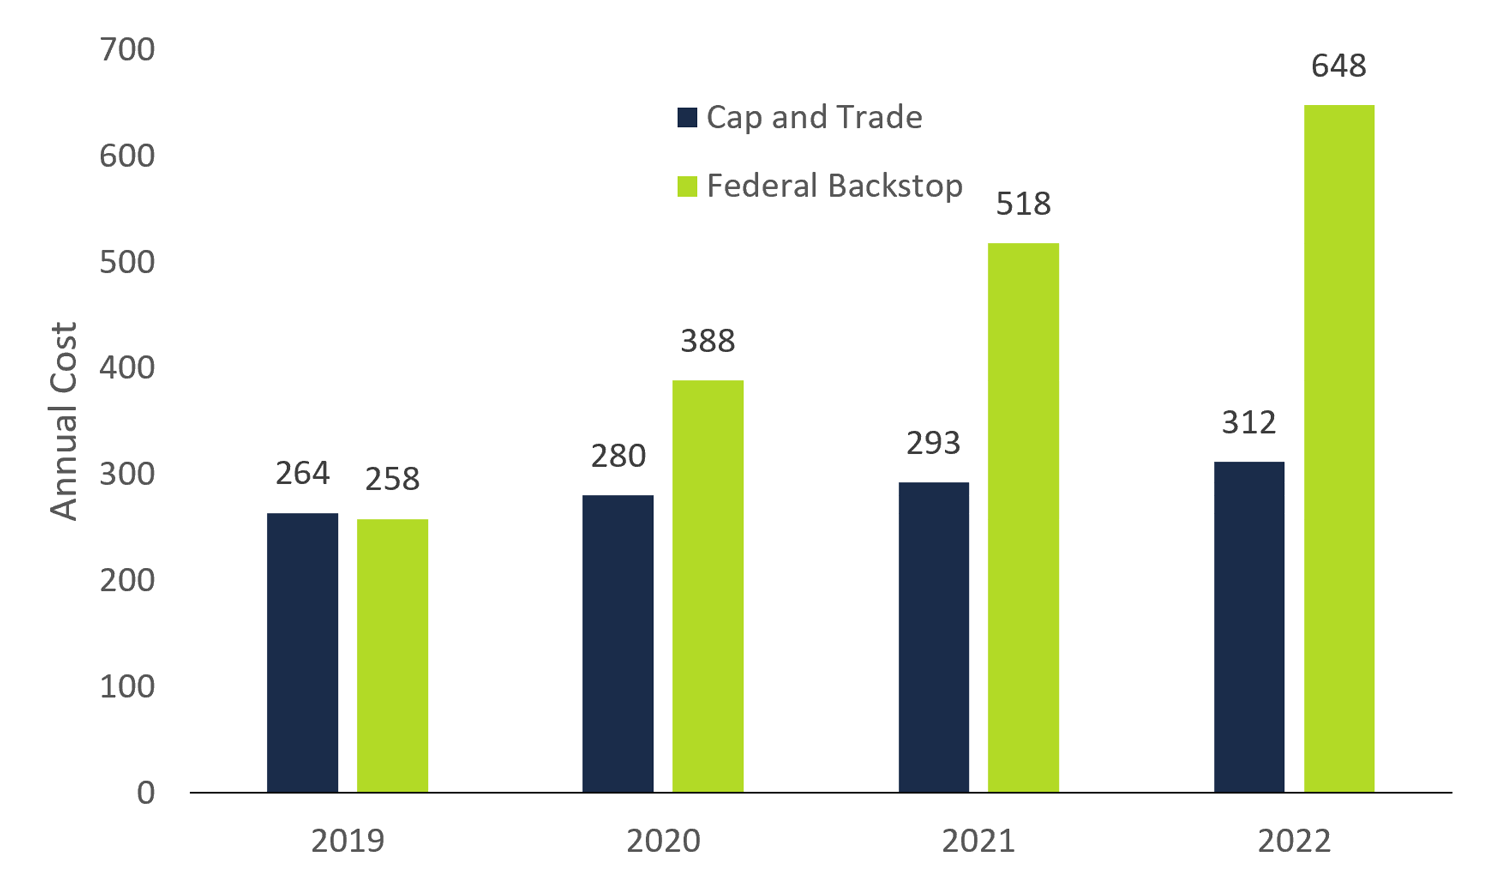 Comparison of typical household costs, cap and trade vs. federal carbon pricing backstop, 2019 to 2022